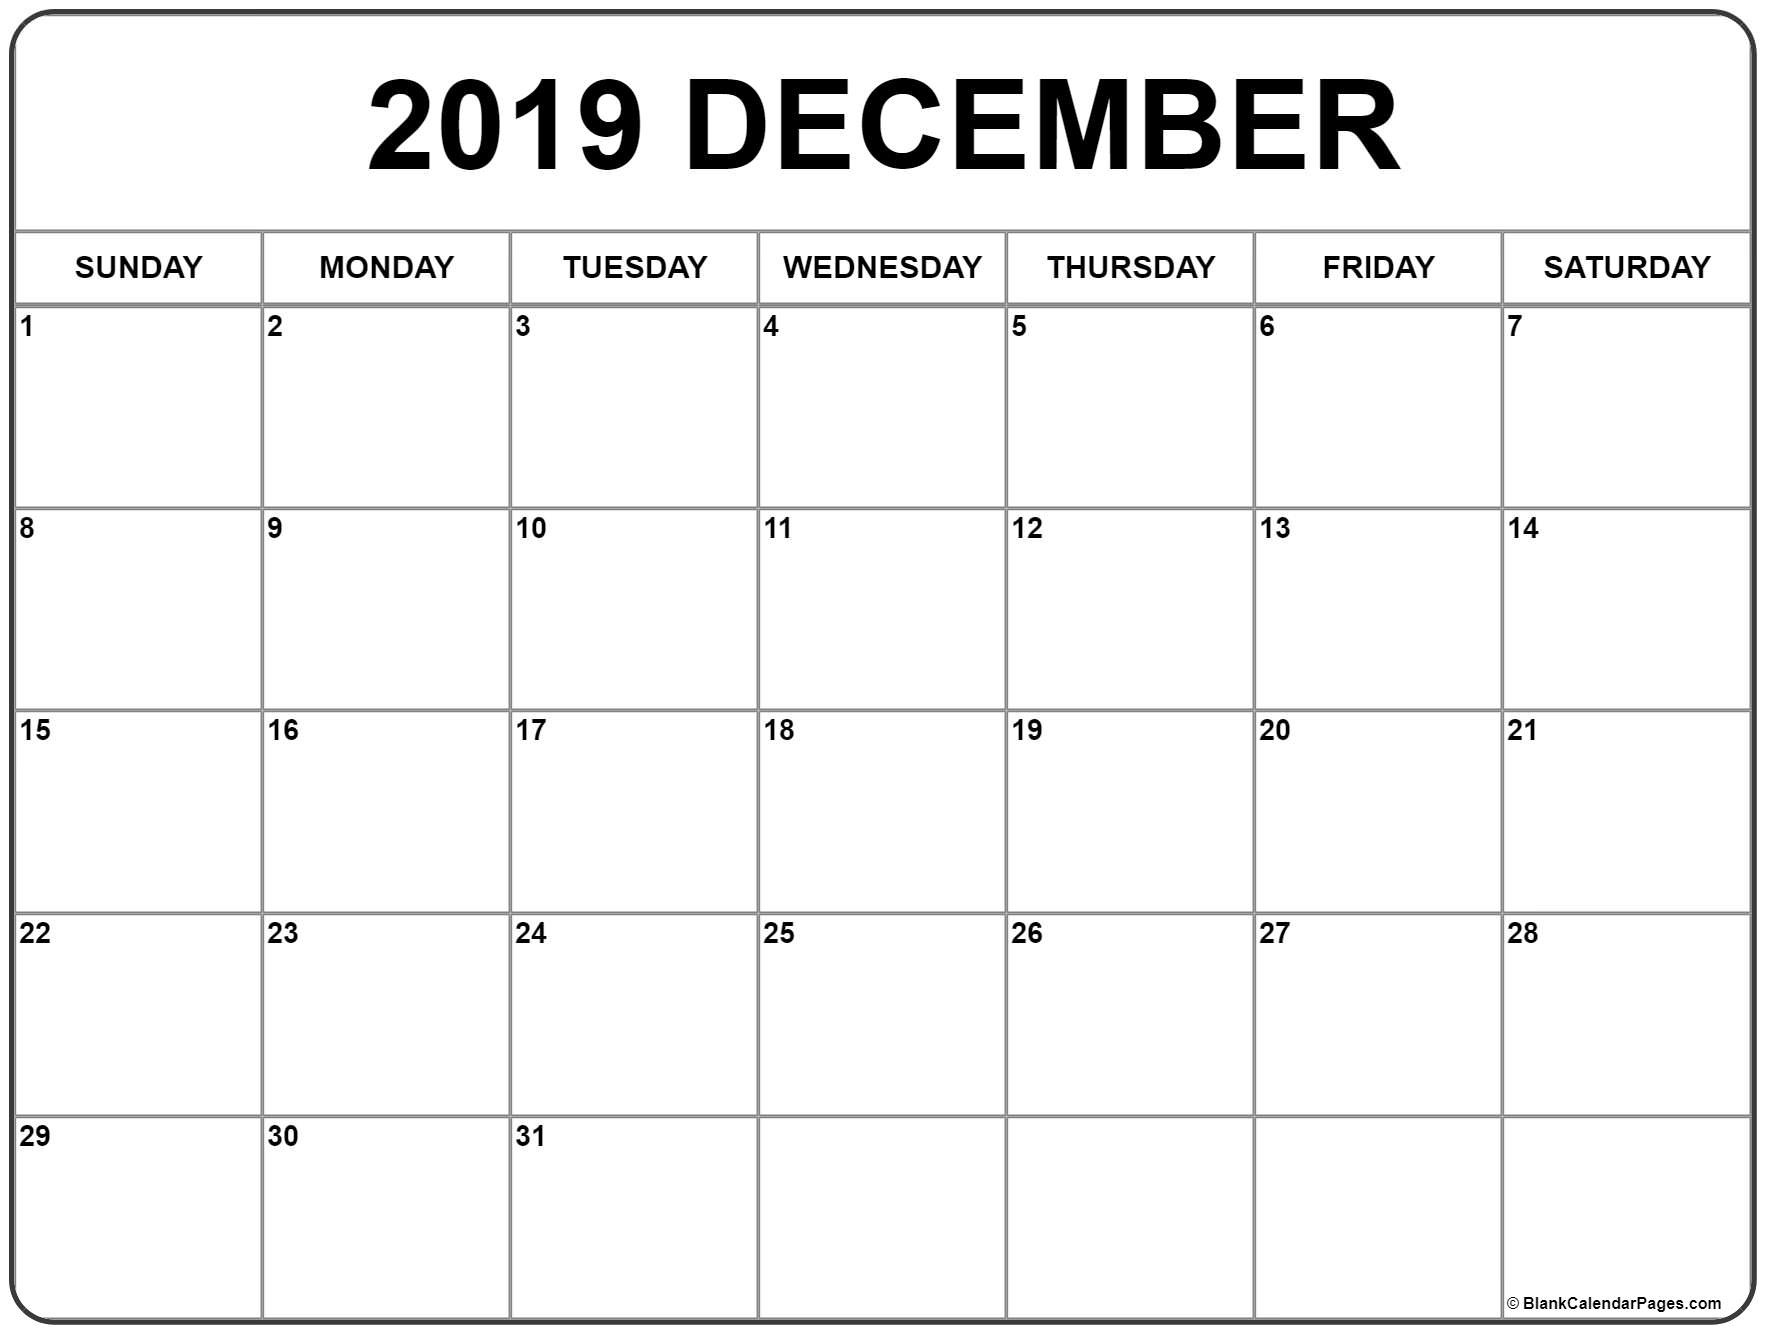 December 2019 Calendar | Free Printable Monthly Calendars-December Canada Printable Calendar Free Monthly